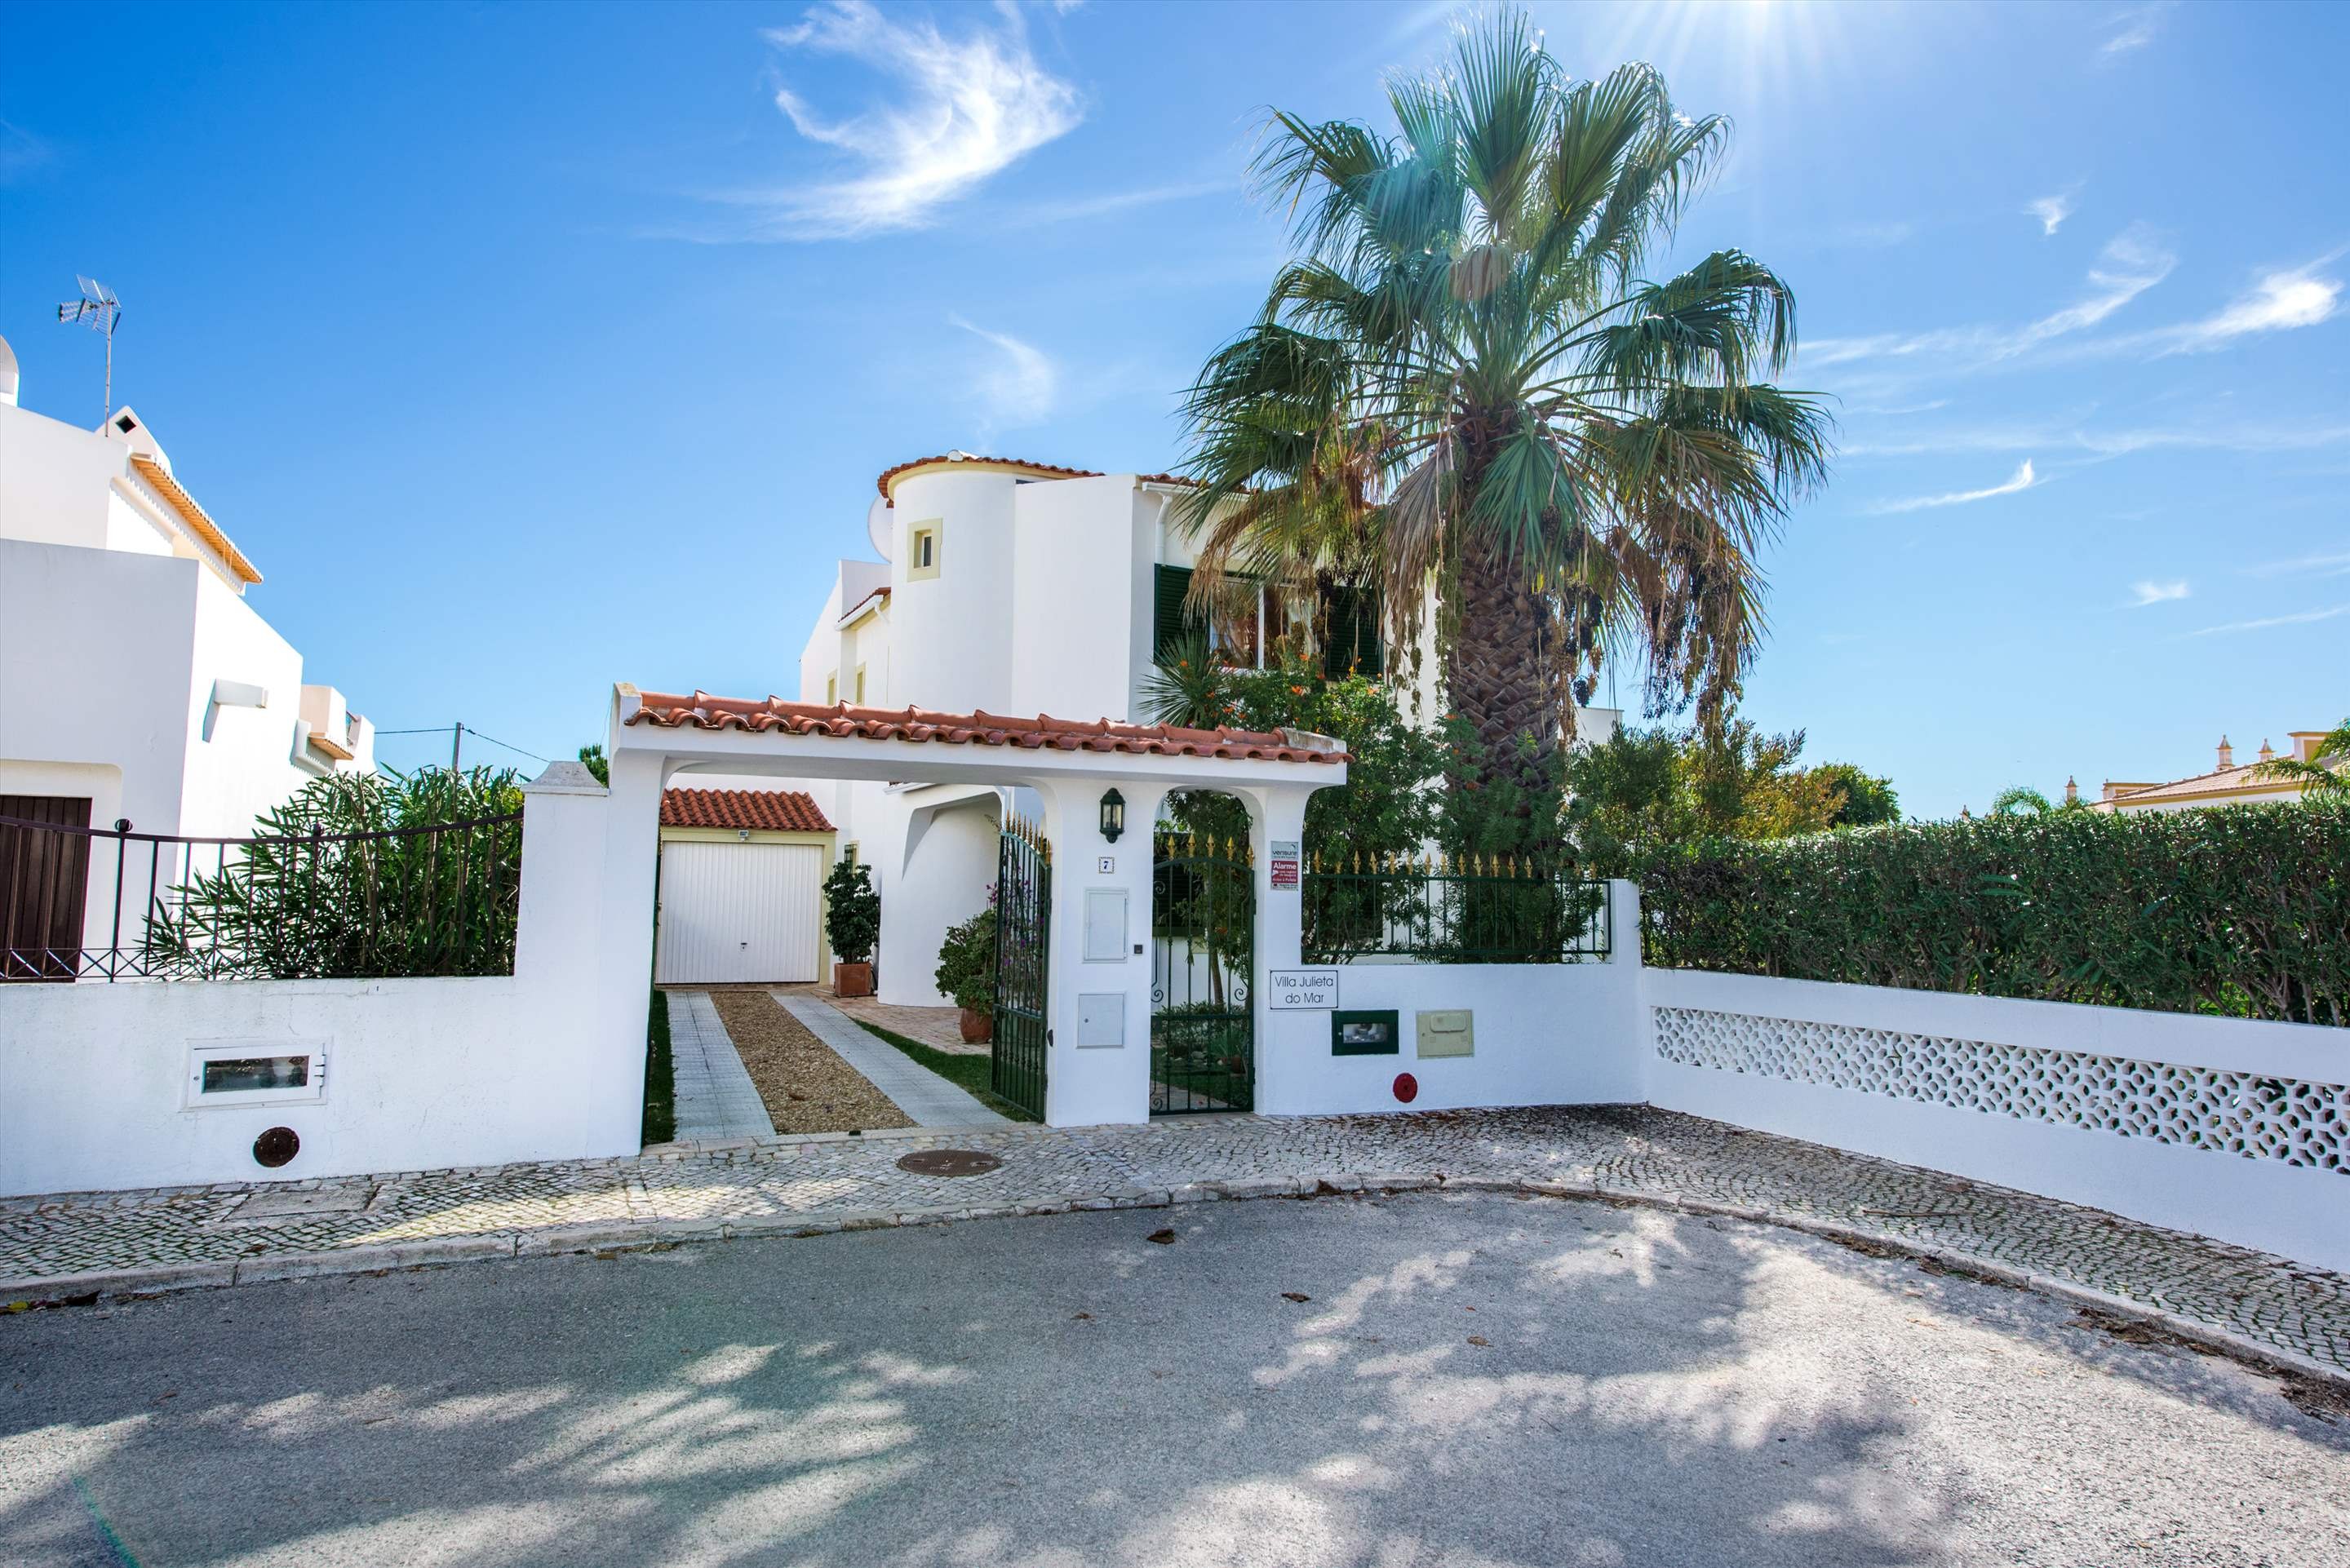 Julieta do Mar, Up to 6 Persons, 3 bedroom villa in Gale, Vale da Parra and Guia, Algarve Photo #22